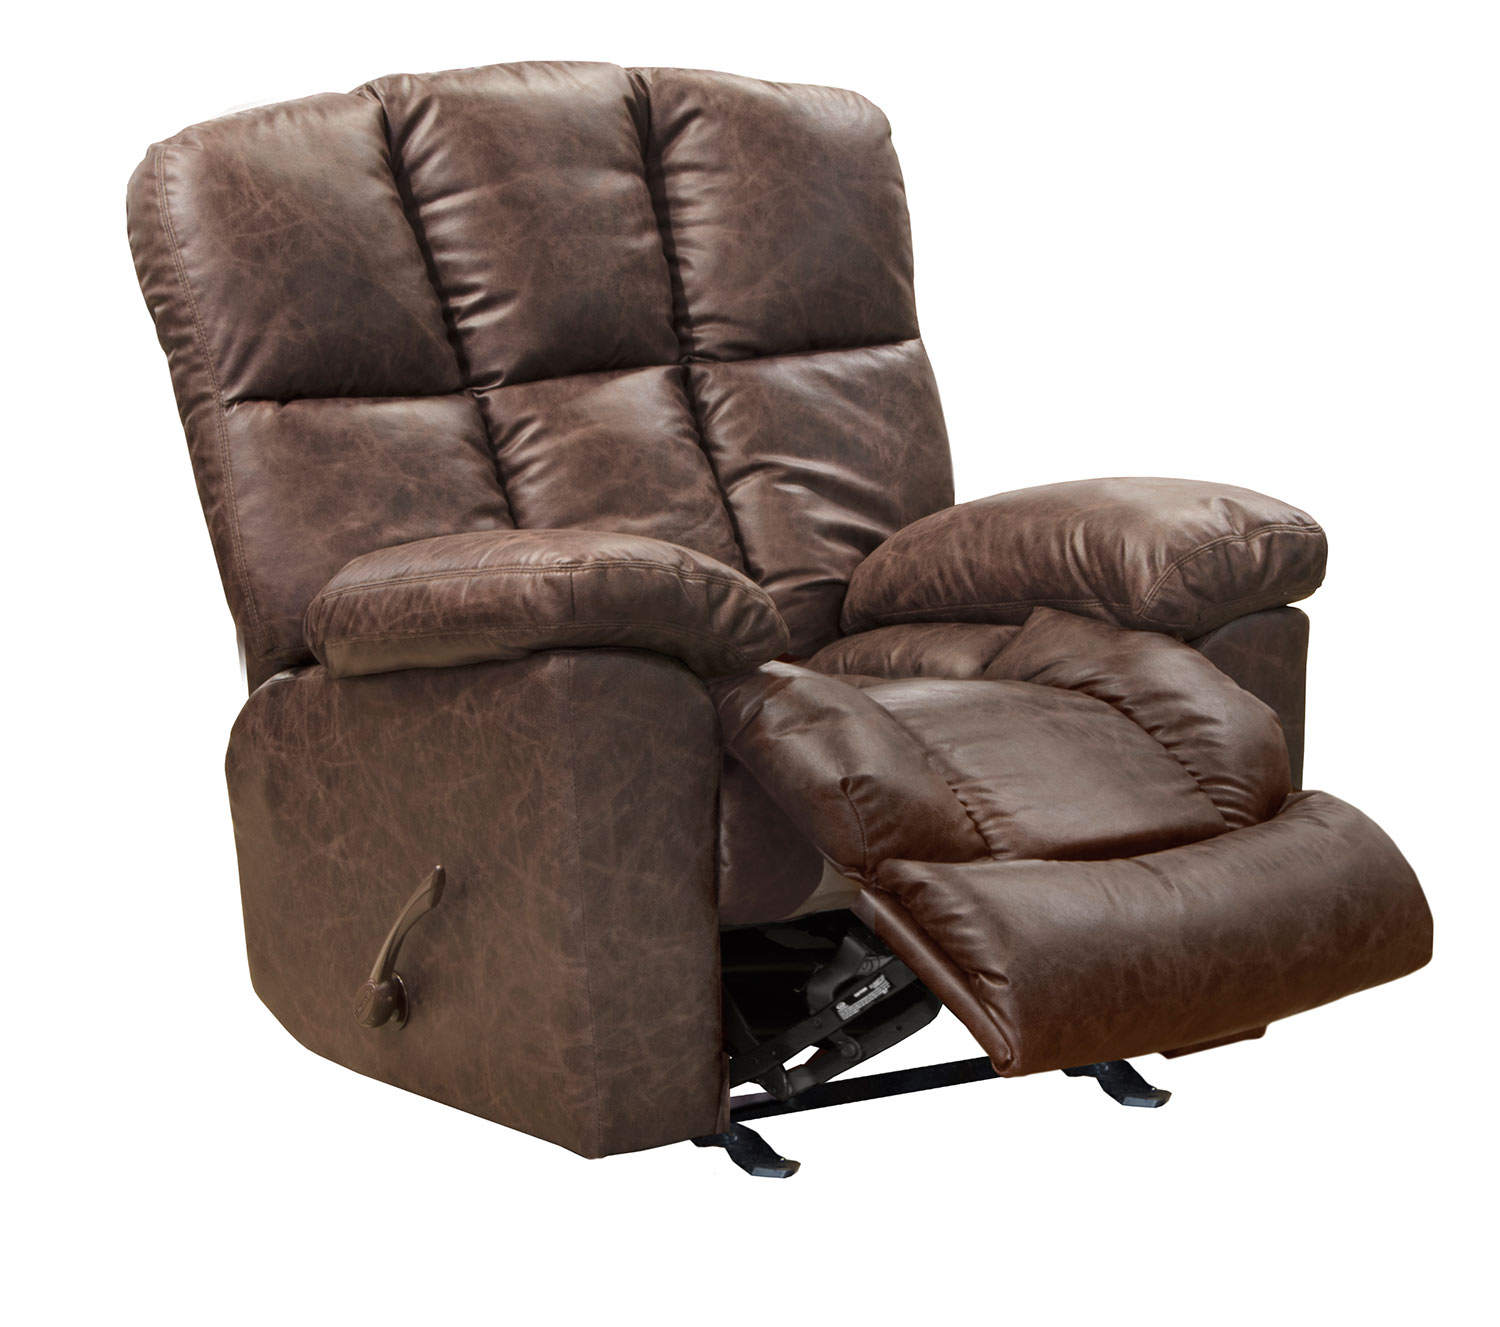 CatNapper Mayfield Glider Recliner Chair - Saddle